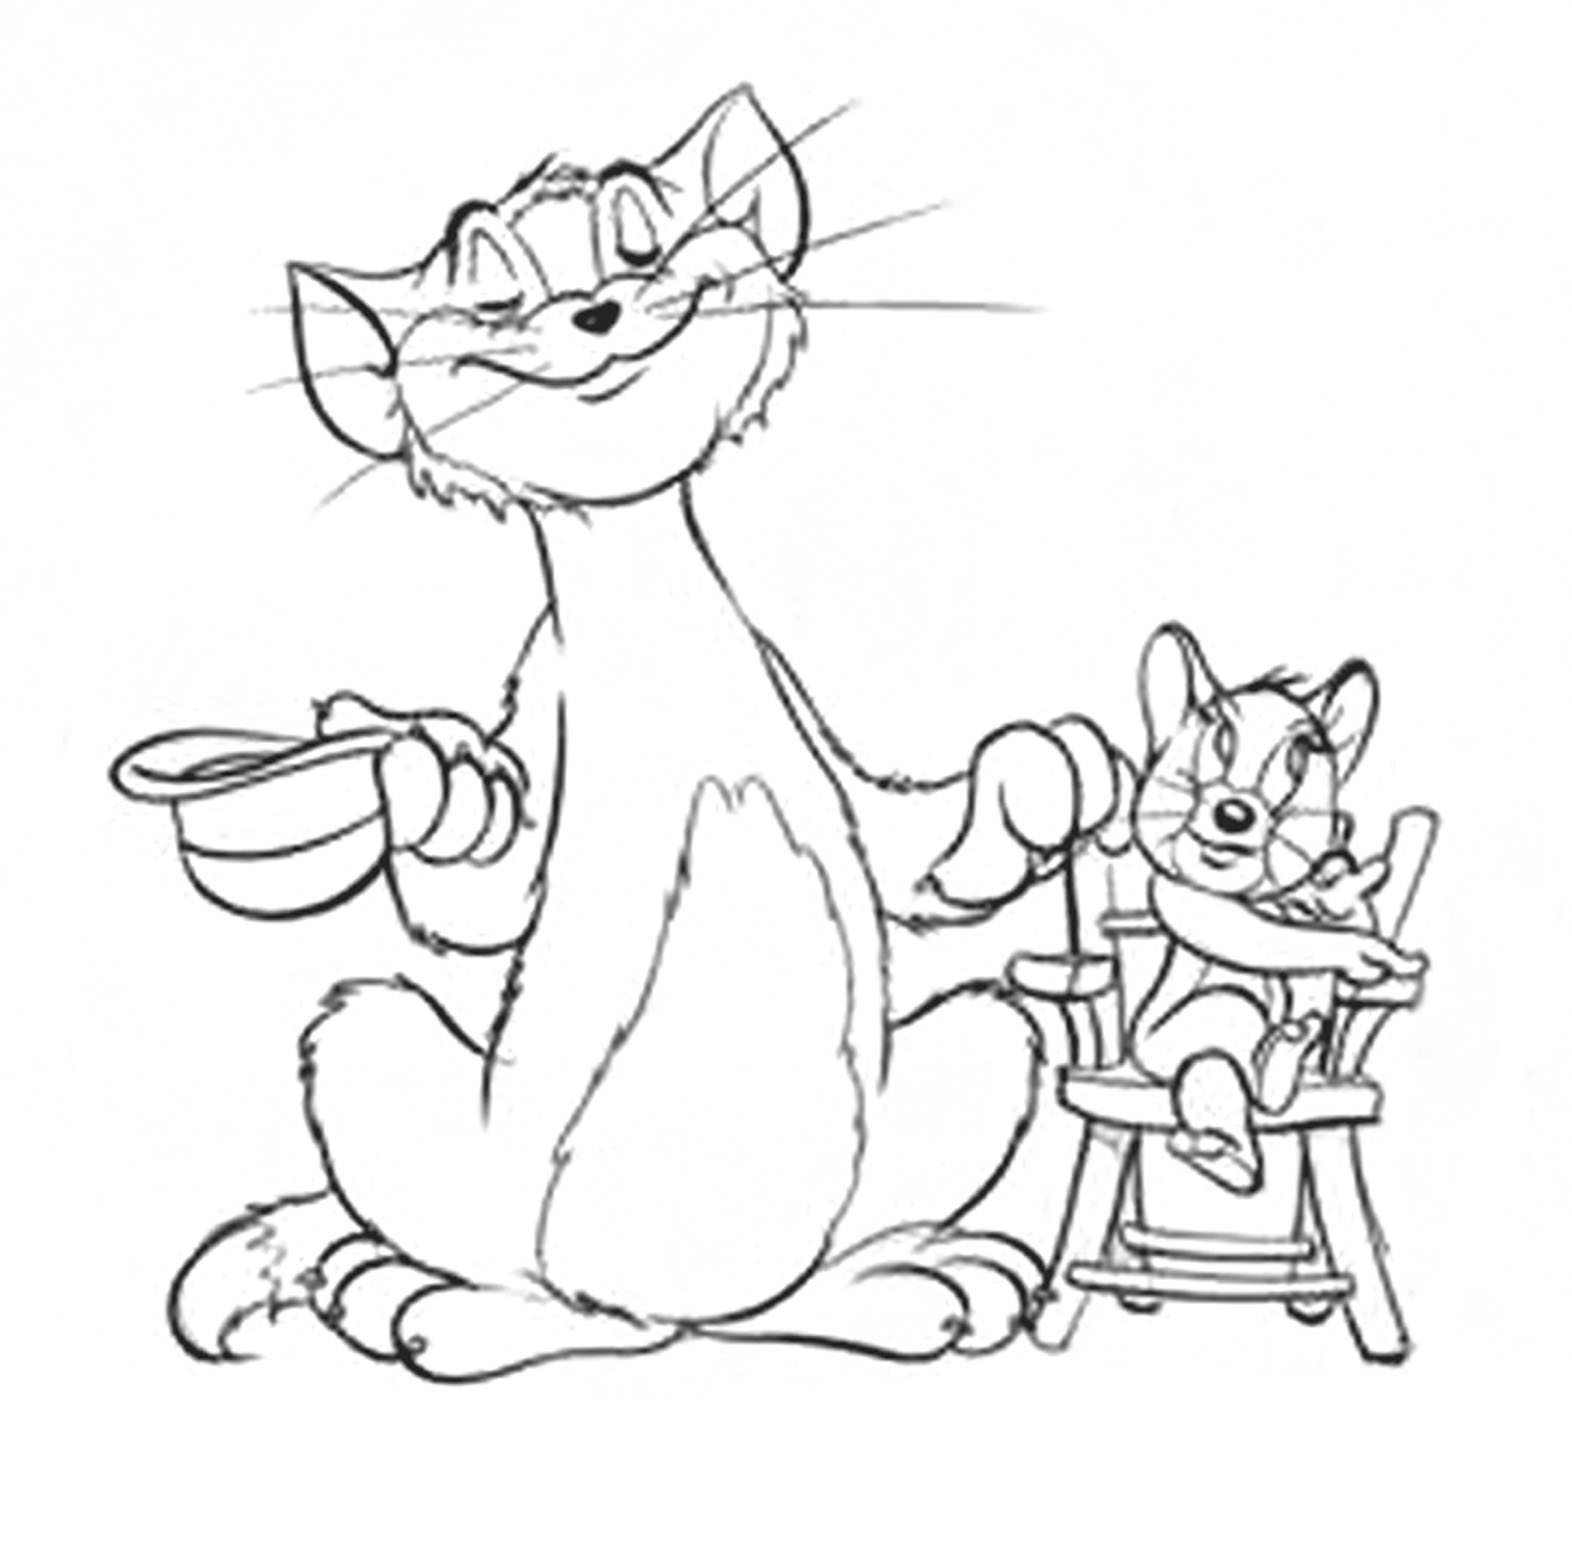 The tom and jerry online an unofficial site printable coloring pages